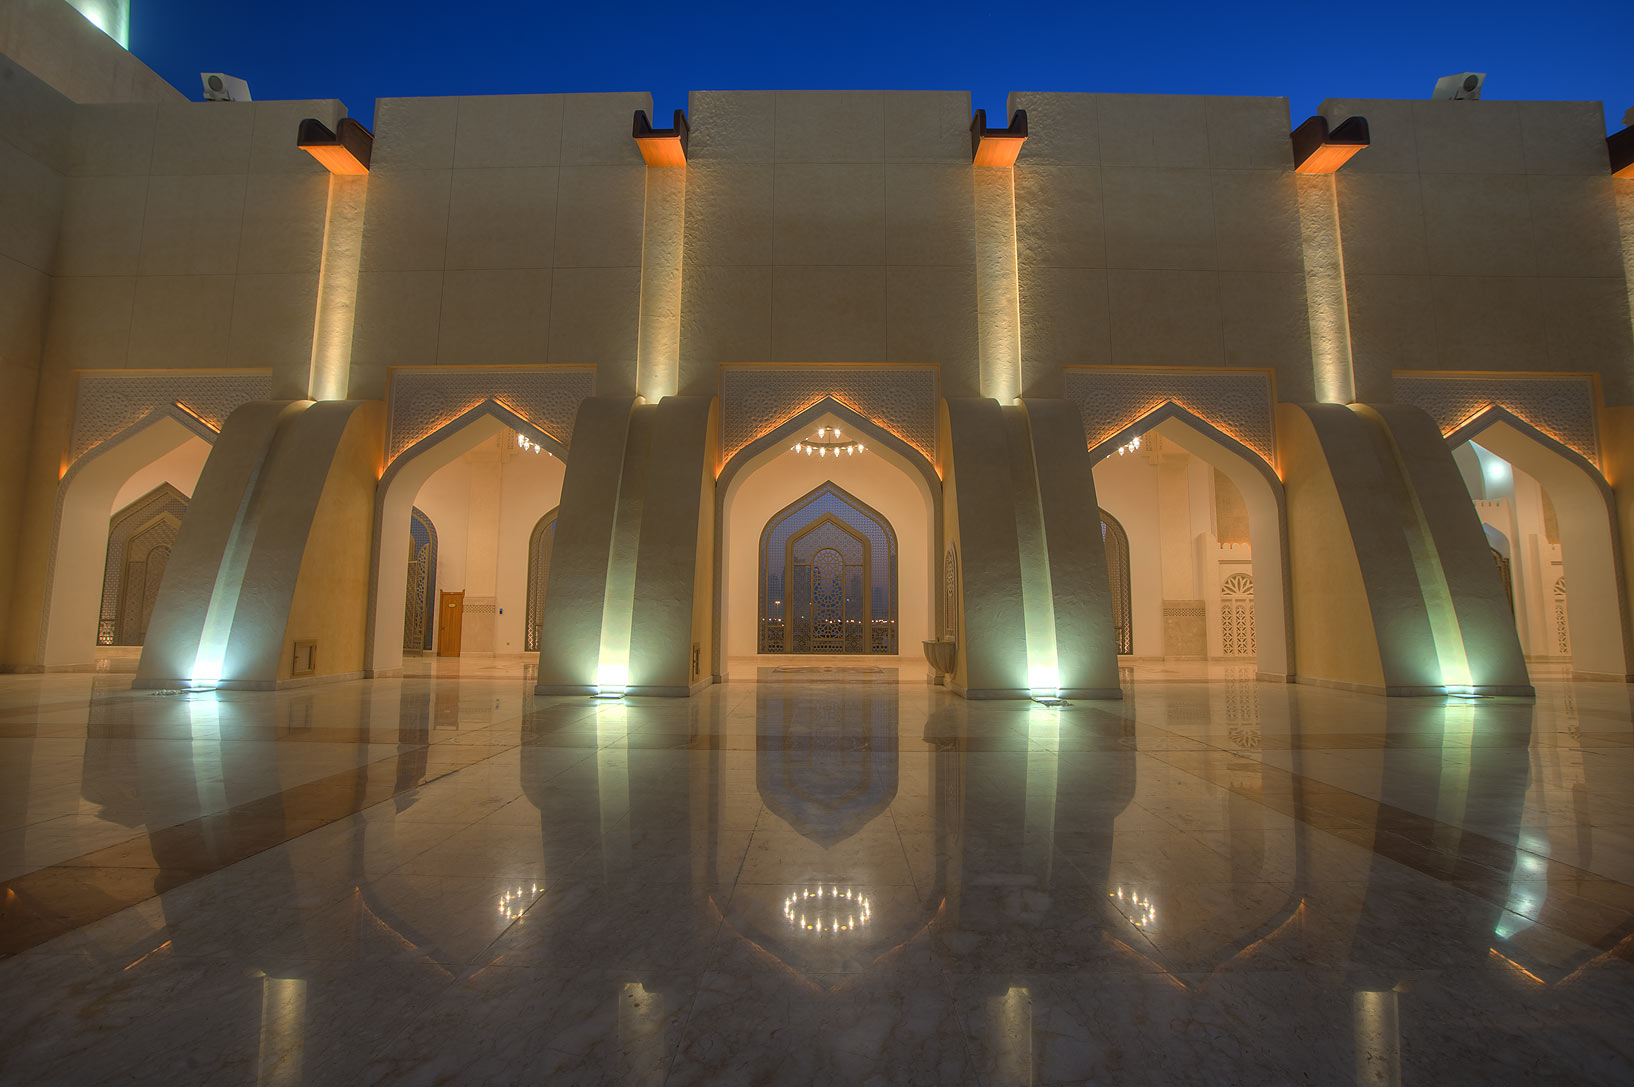 Walls of stone courtyard of State Mosque (Sheikh...Ibn Abdul Wahhab Mosque). Doha, Qatar